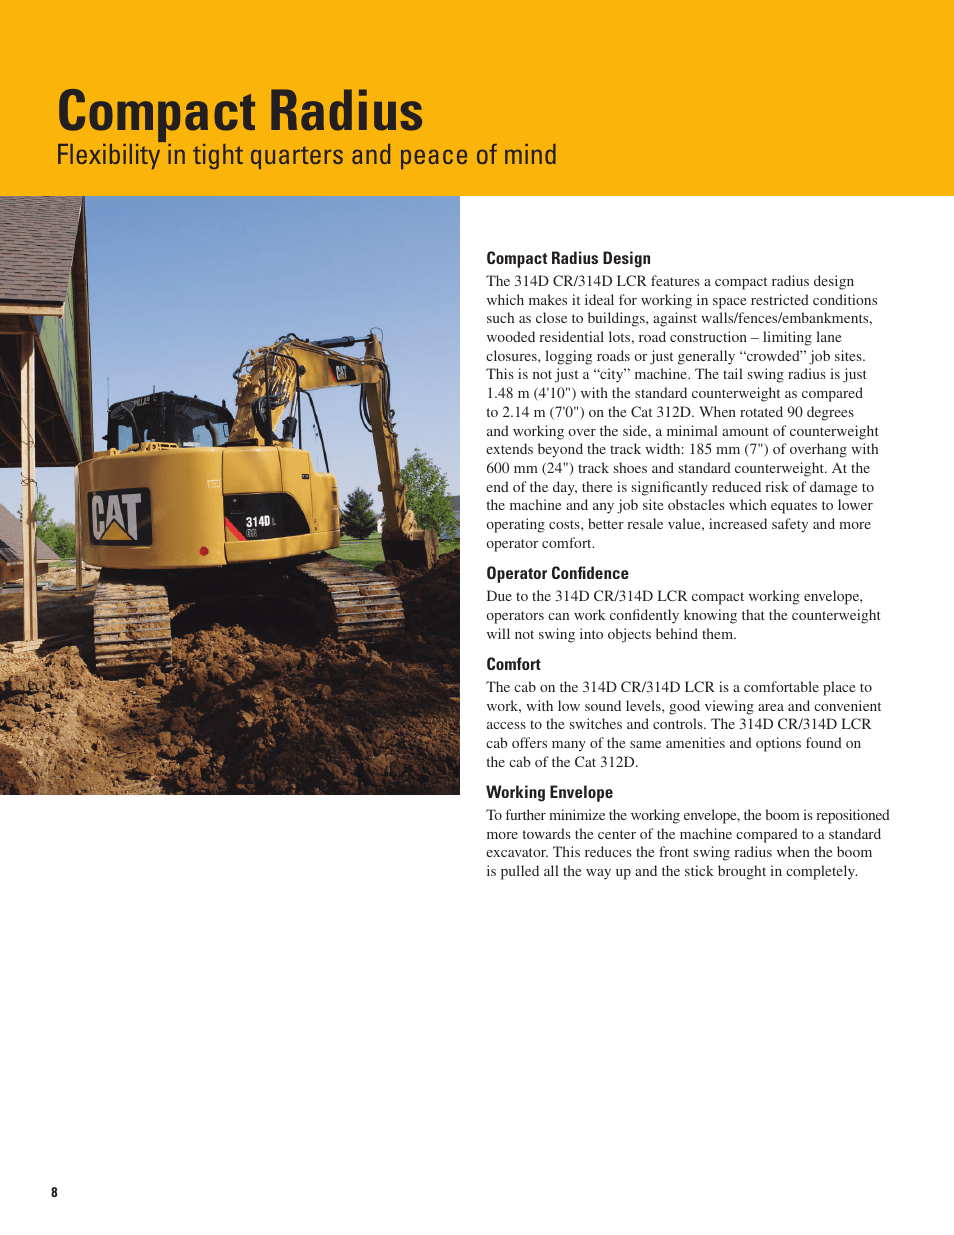 medium resolution of compact radius flexibility in tight quarters and peace of mind milton cat 314d lcr user manual page 8 32